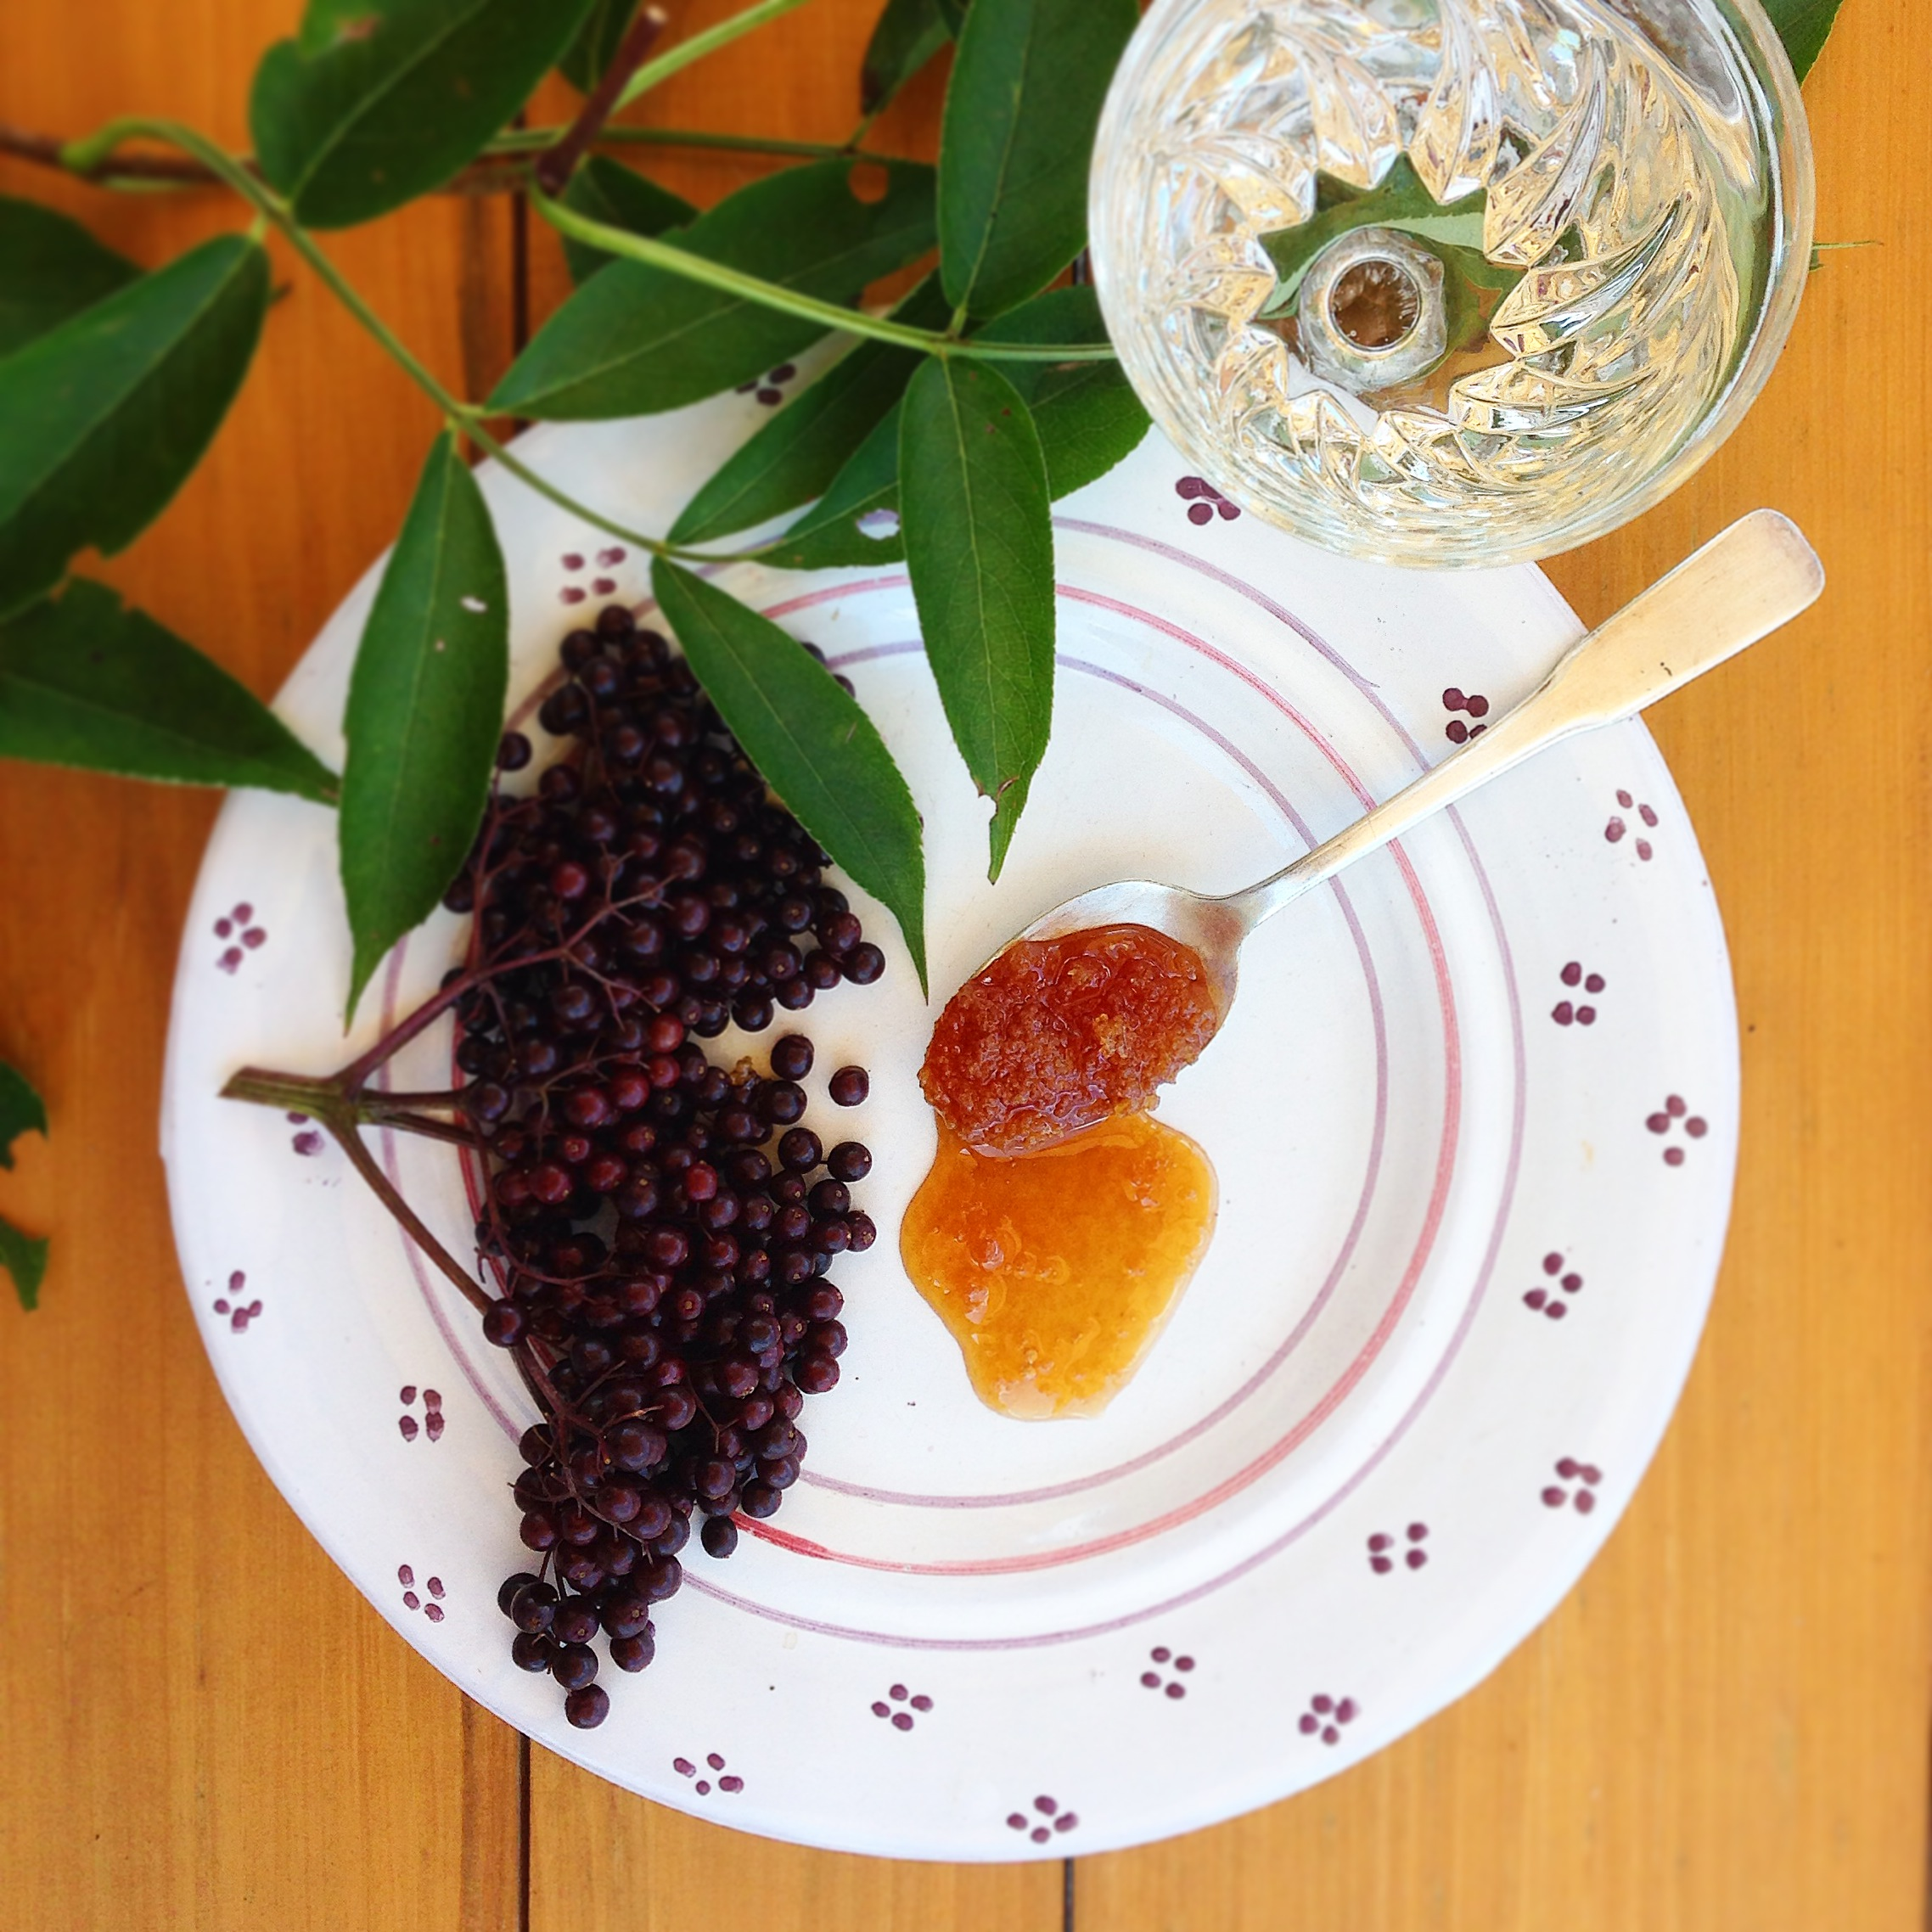 3 simple ingredients to banish the flu and cold forever! fresh elderberries - raw local honey - water